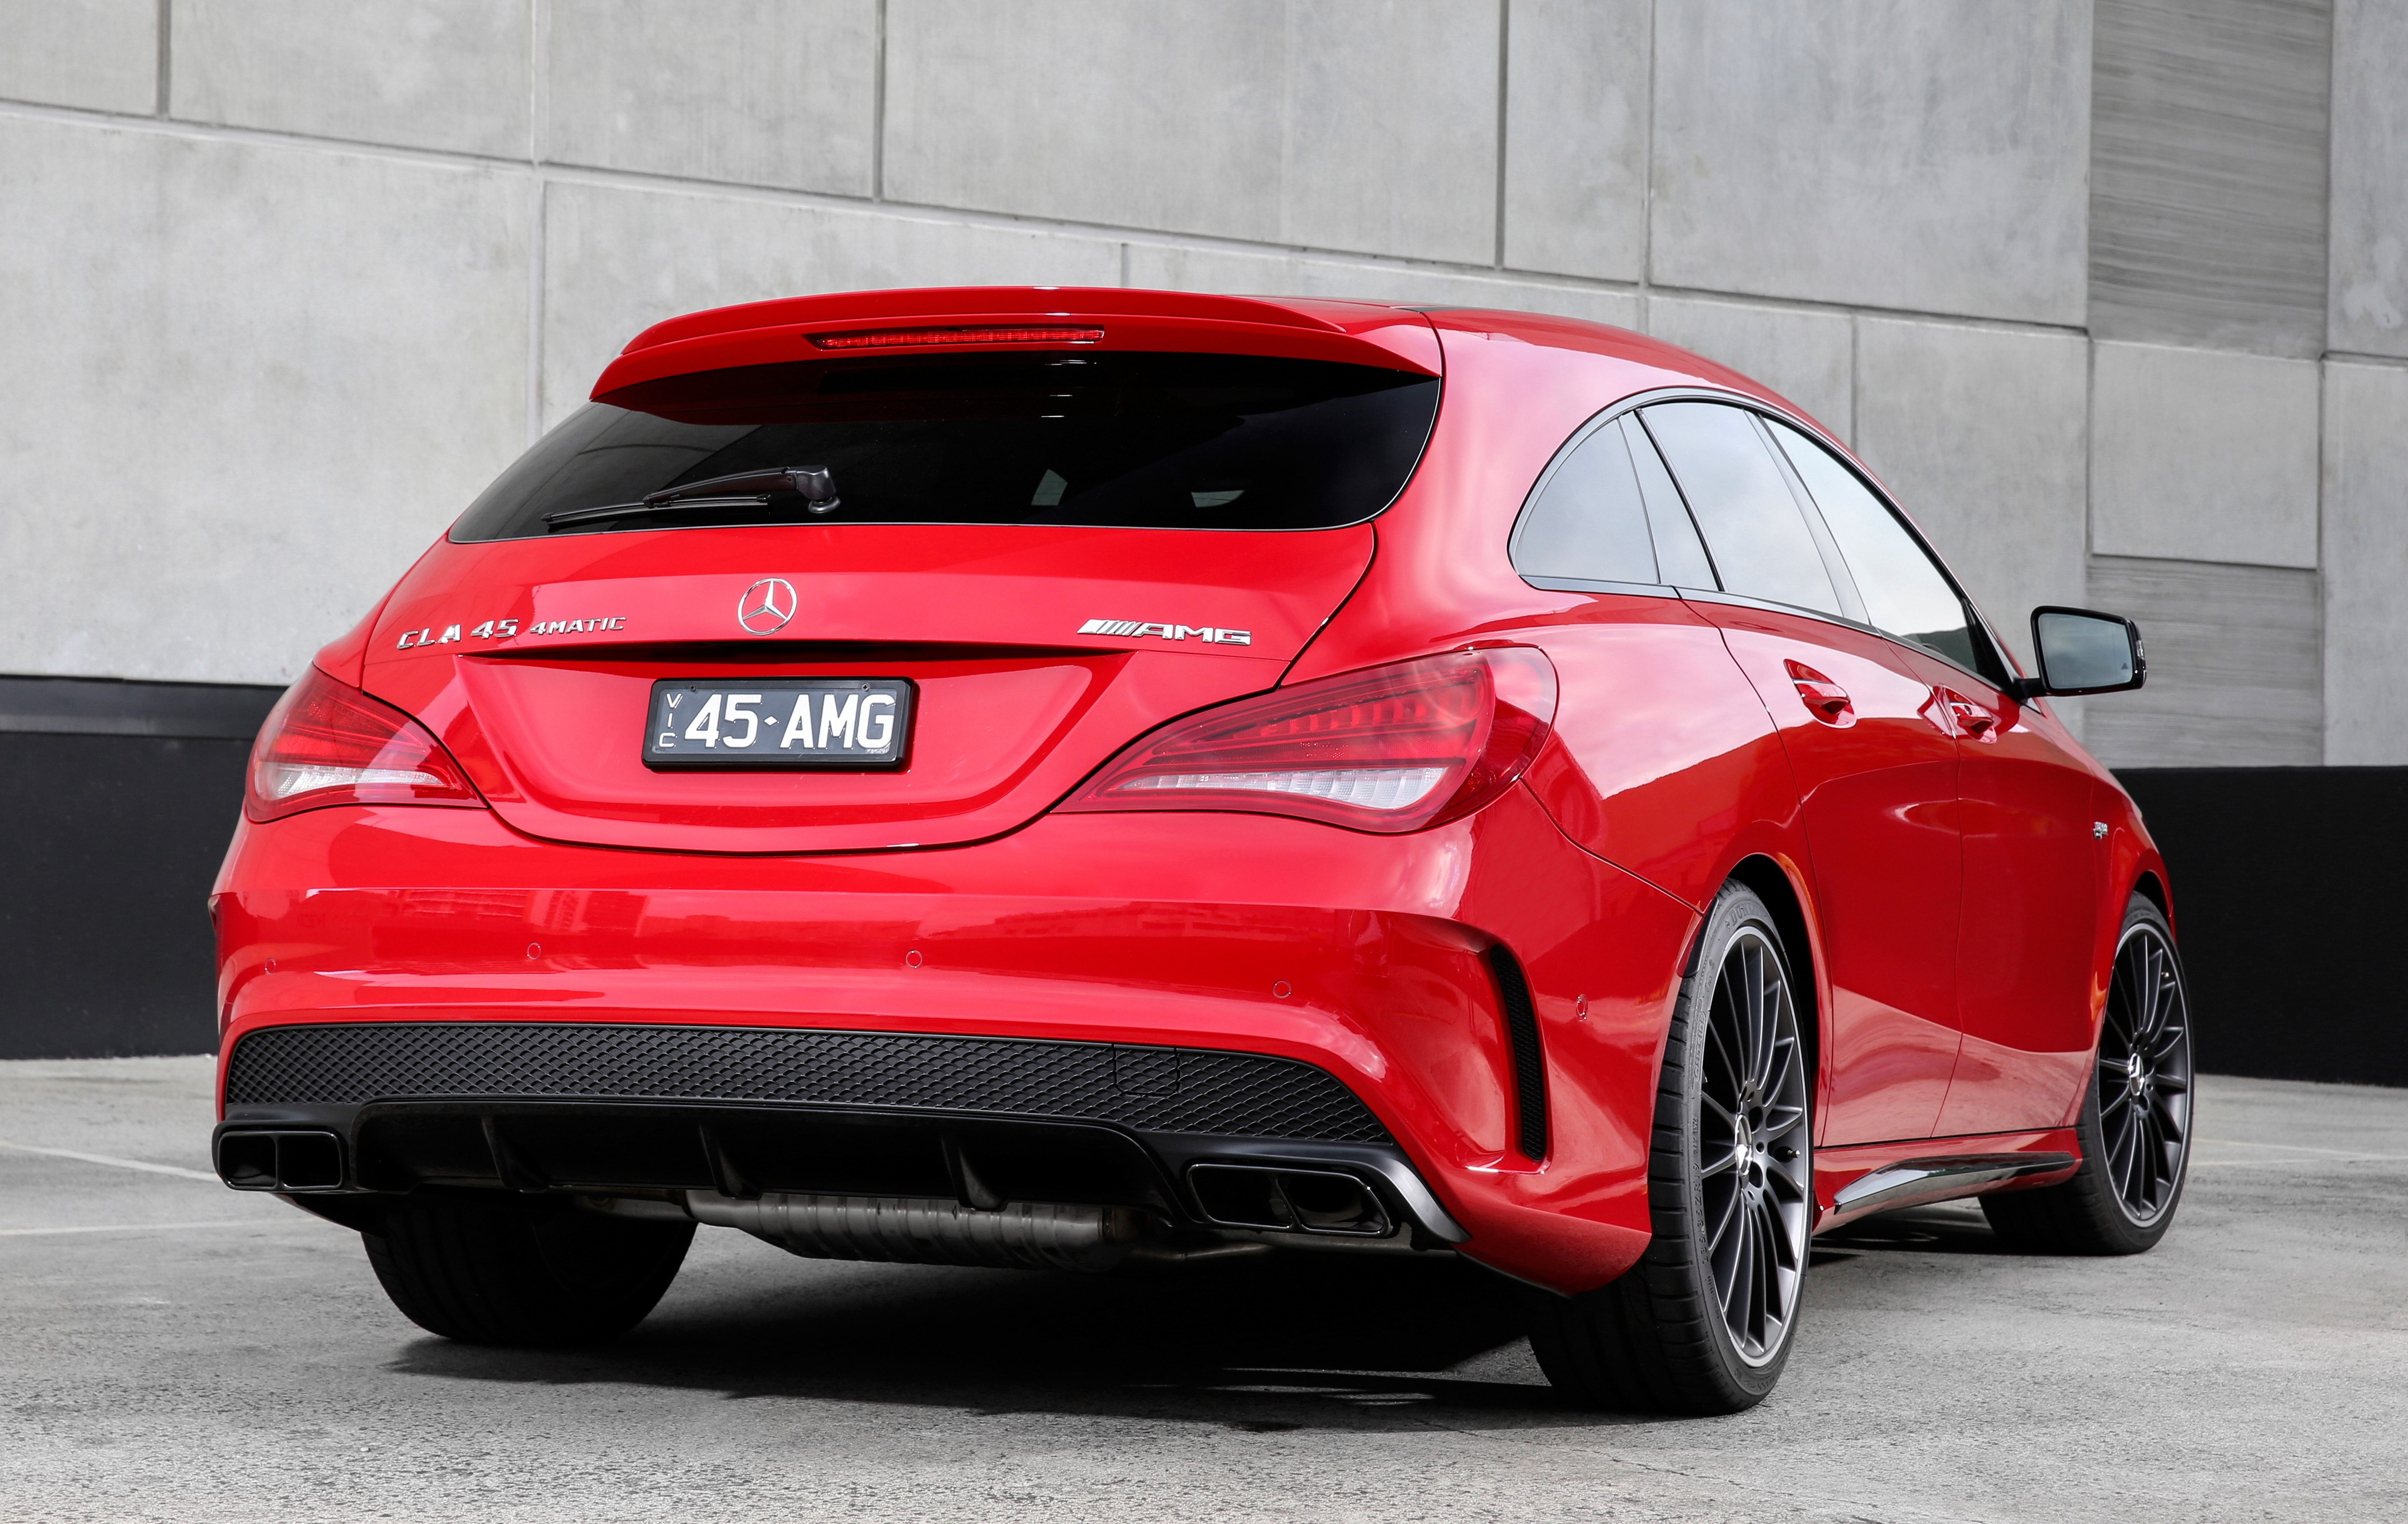 mercedes amg cla 45 shooting brake x117 specs photos 2015 2016 2017 2018 2019. Black Bedroom Furniture Sets. Home Design Ideas